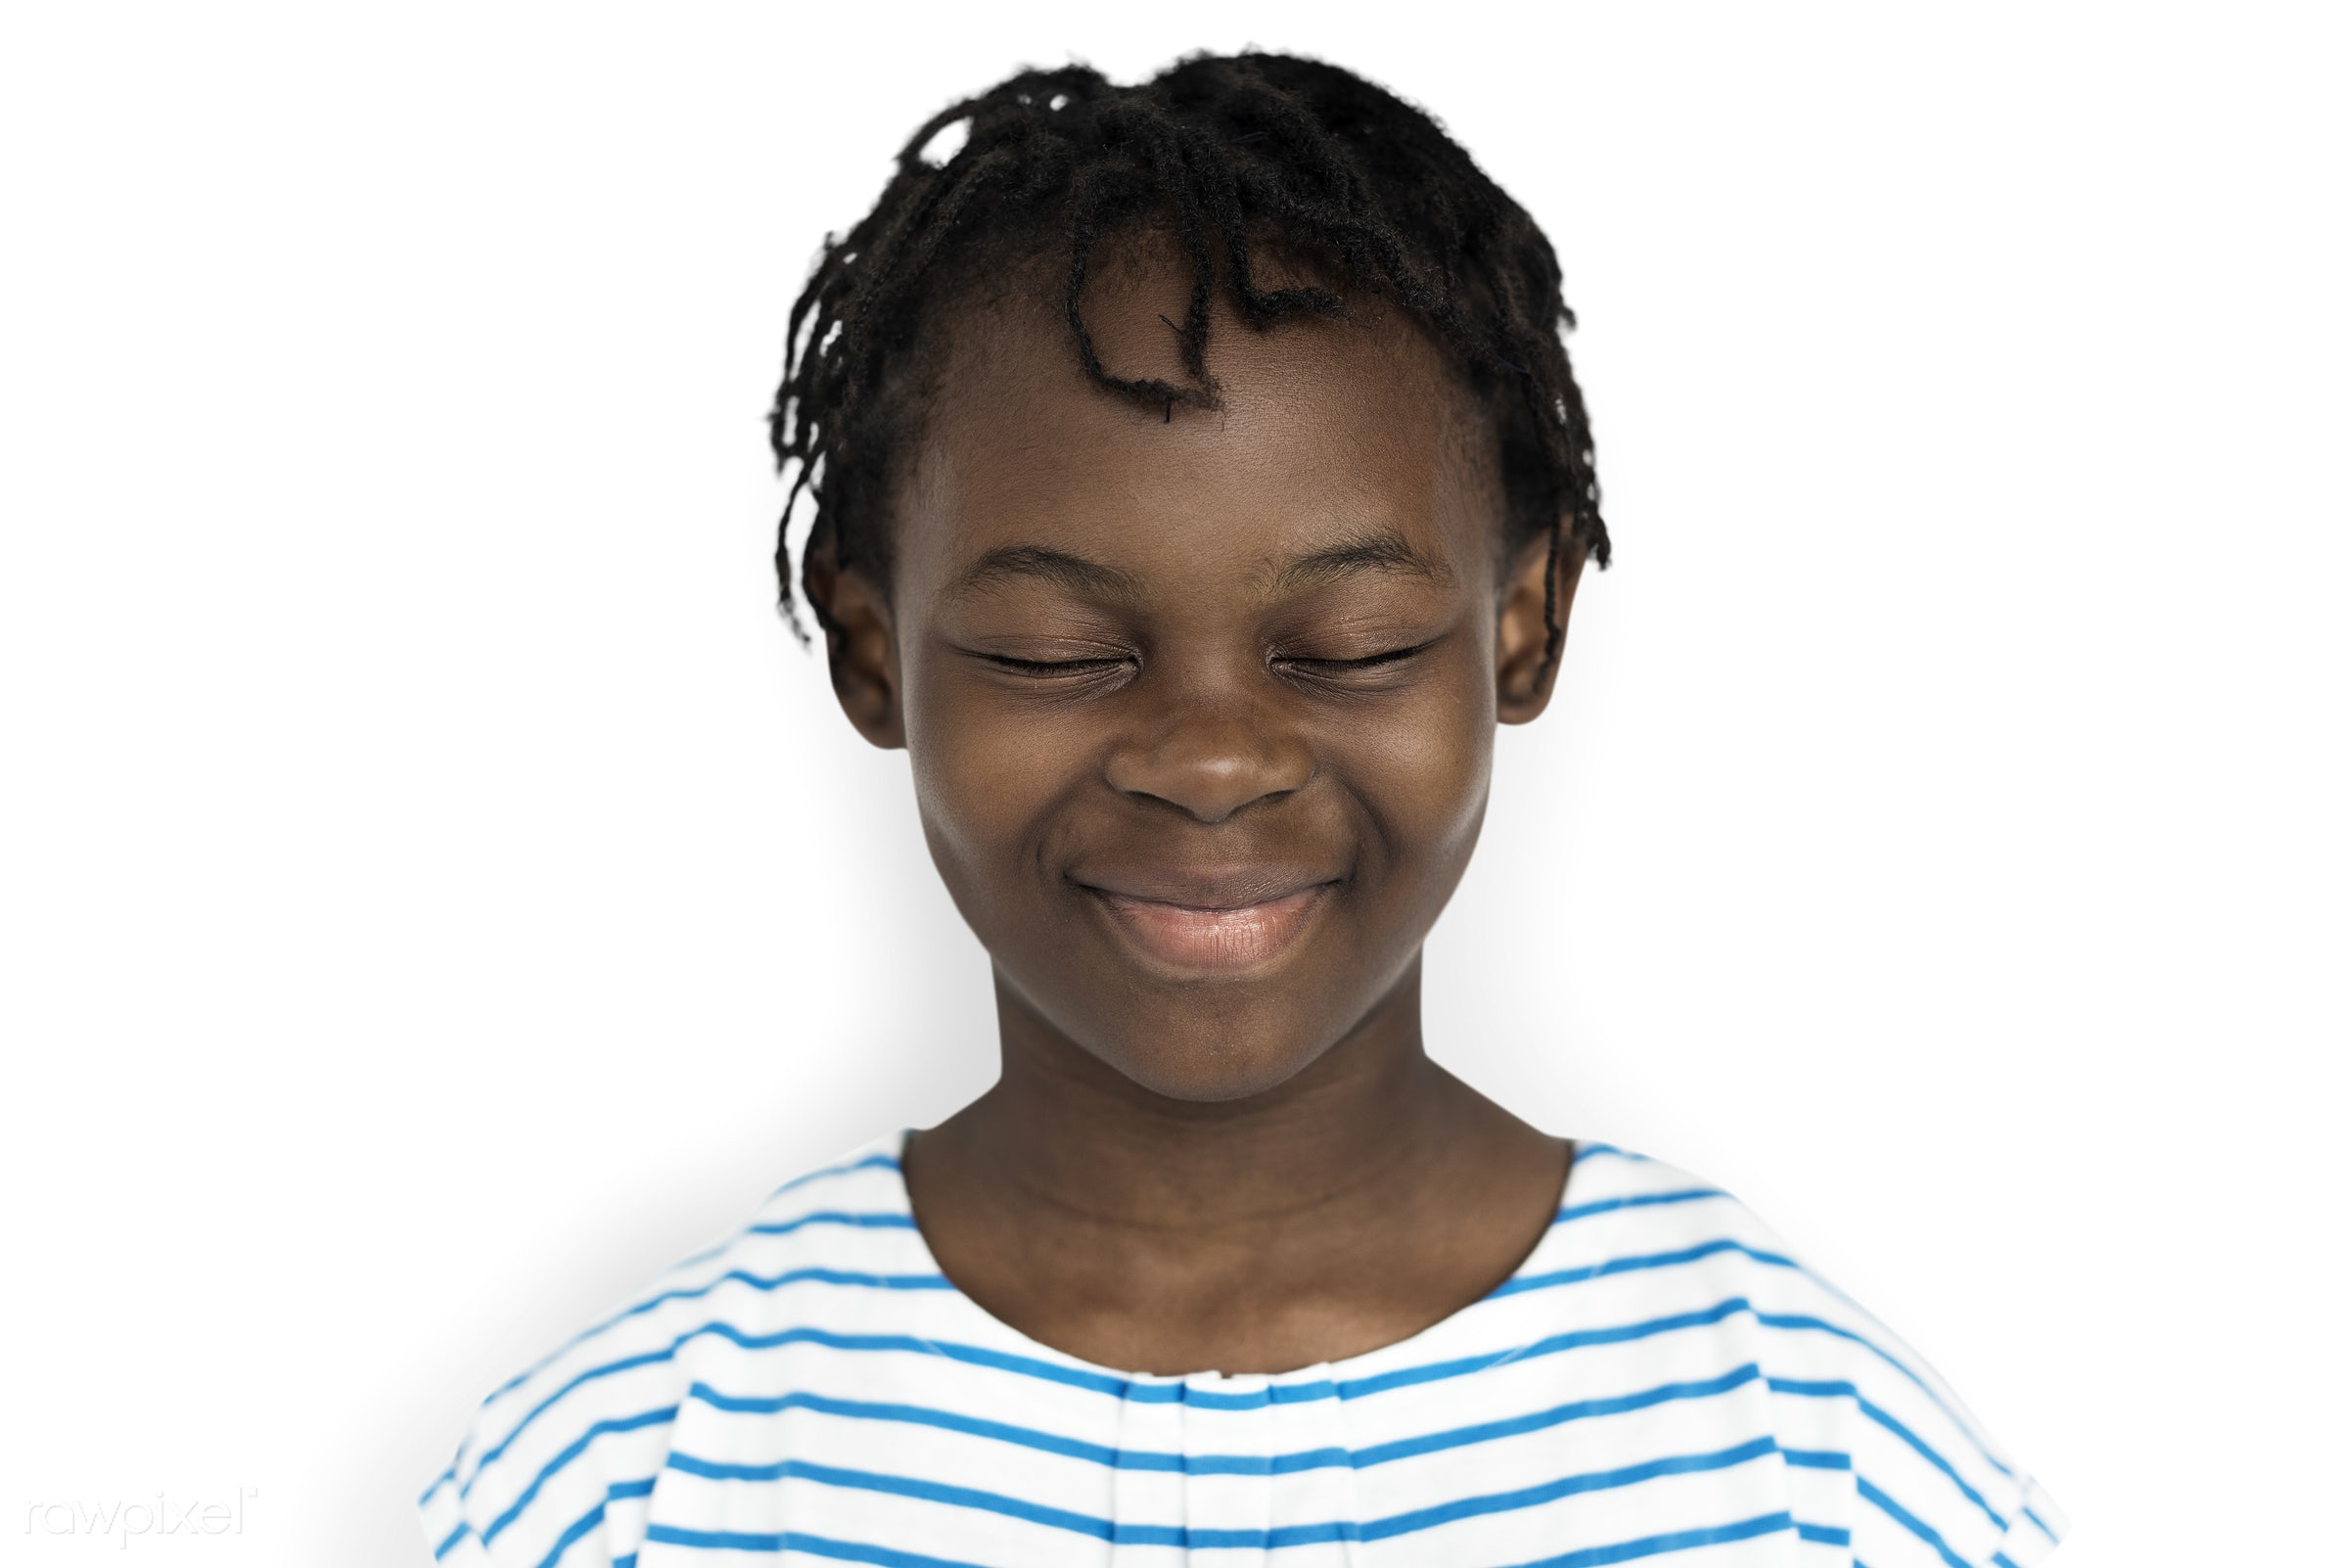 Portarit of a young African American girl - expression, studio, person, little, people, kid, childhood, cheerful, smiling,...